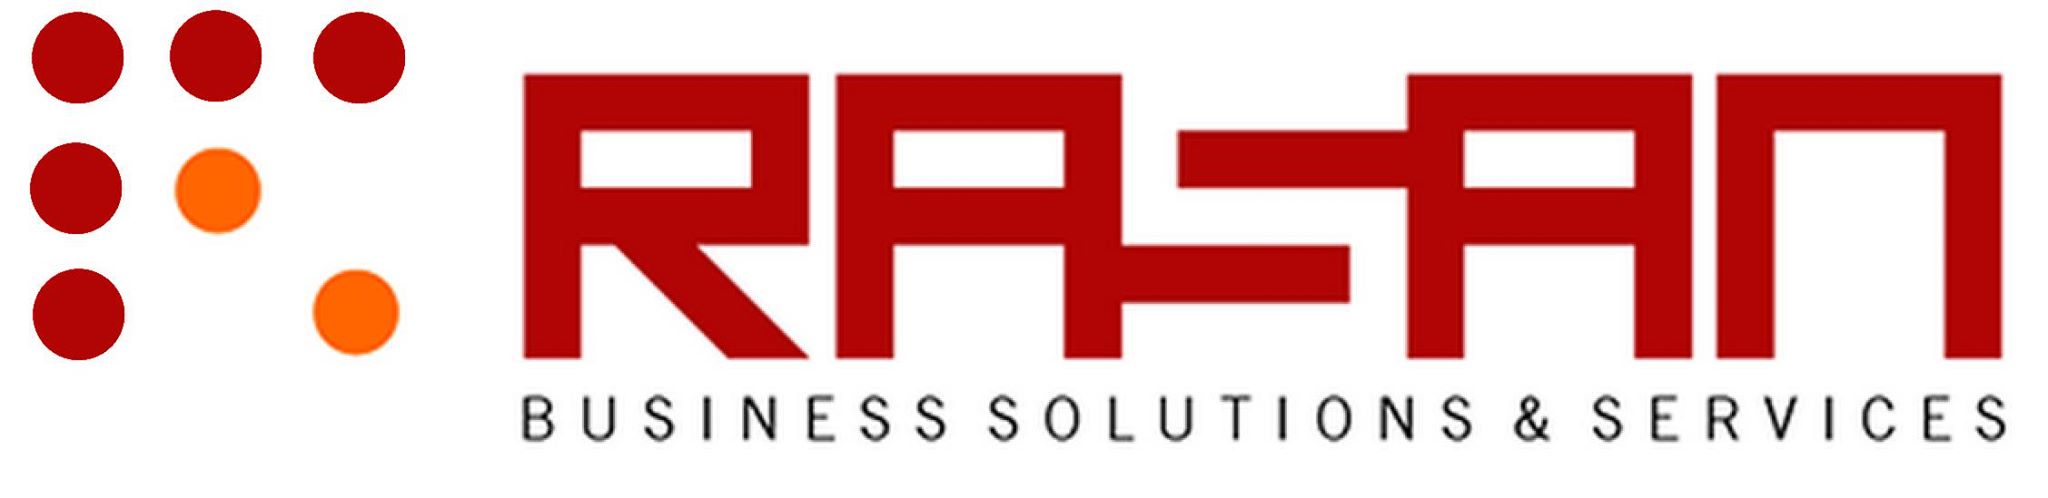 Rasan Business Solutions and Services Inc